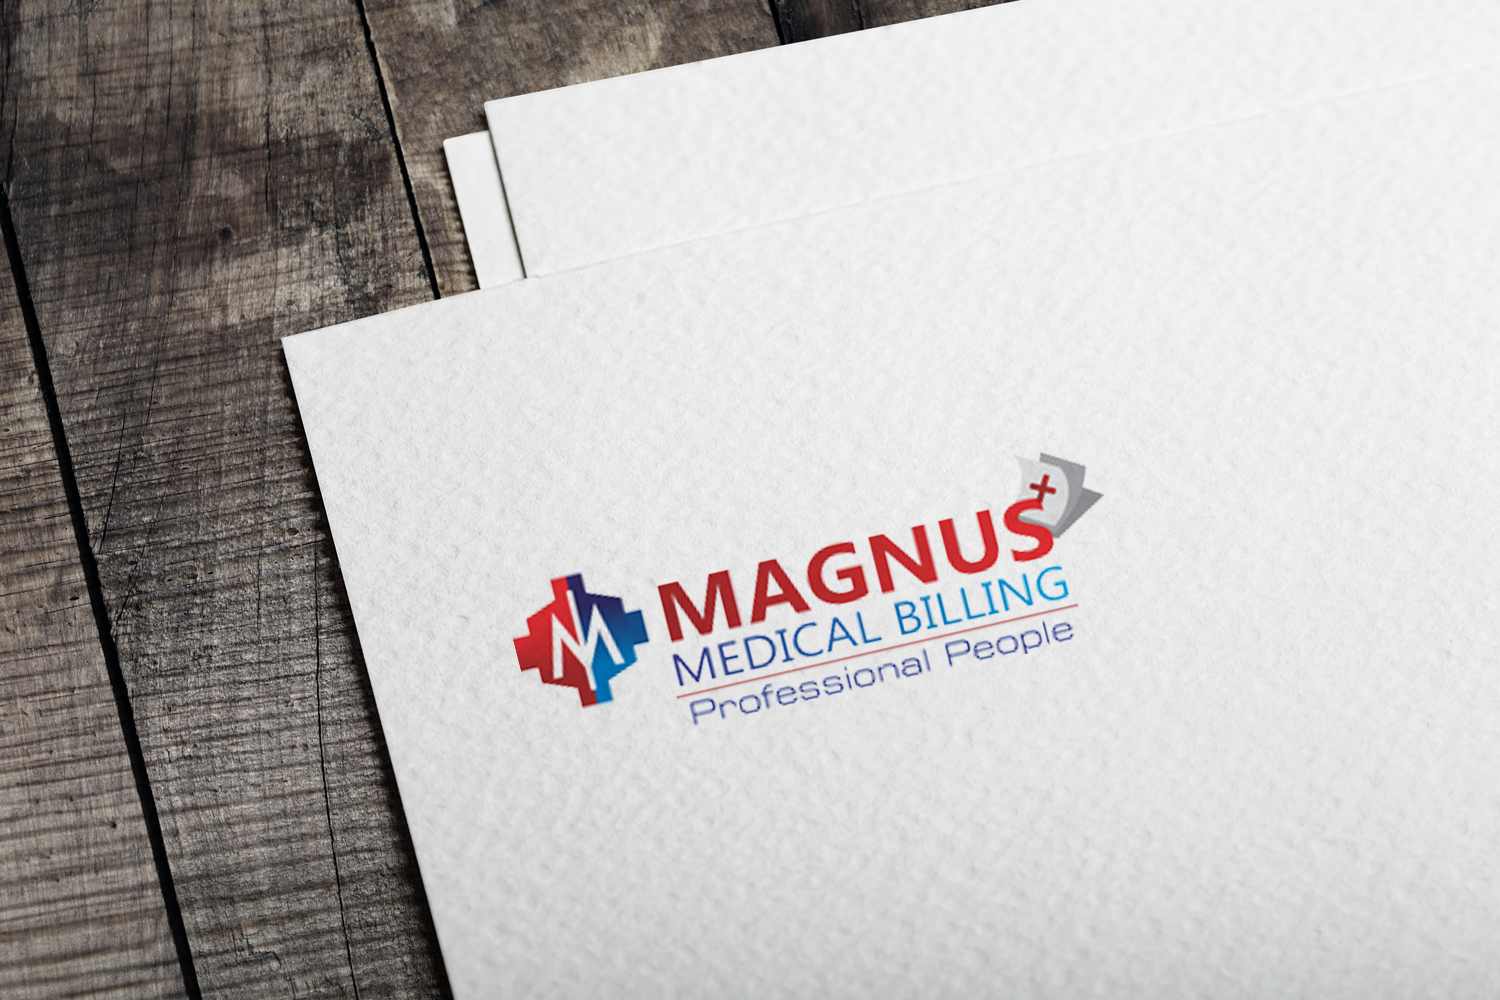 Magnus Medical Billing (Logo)